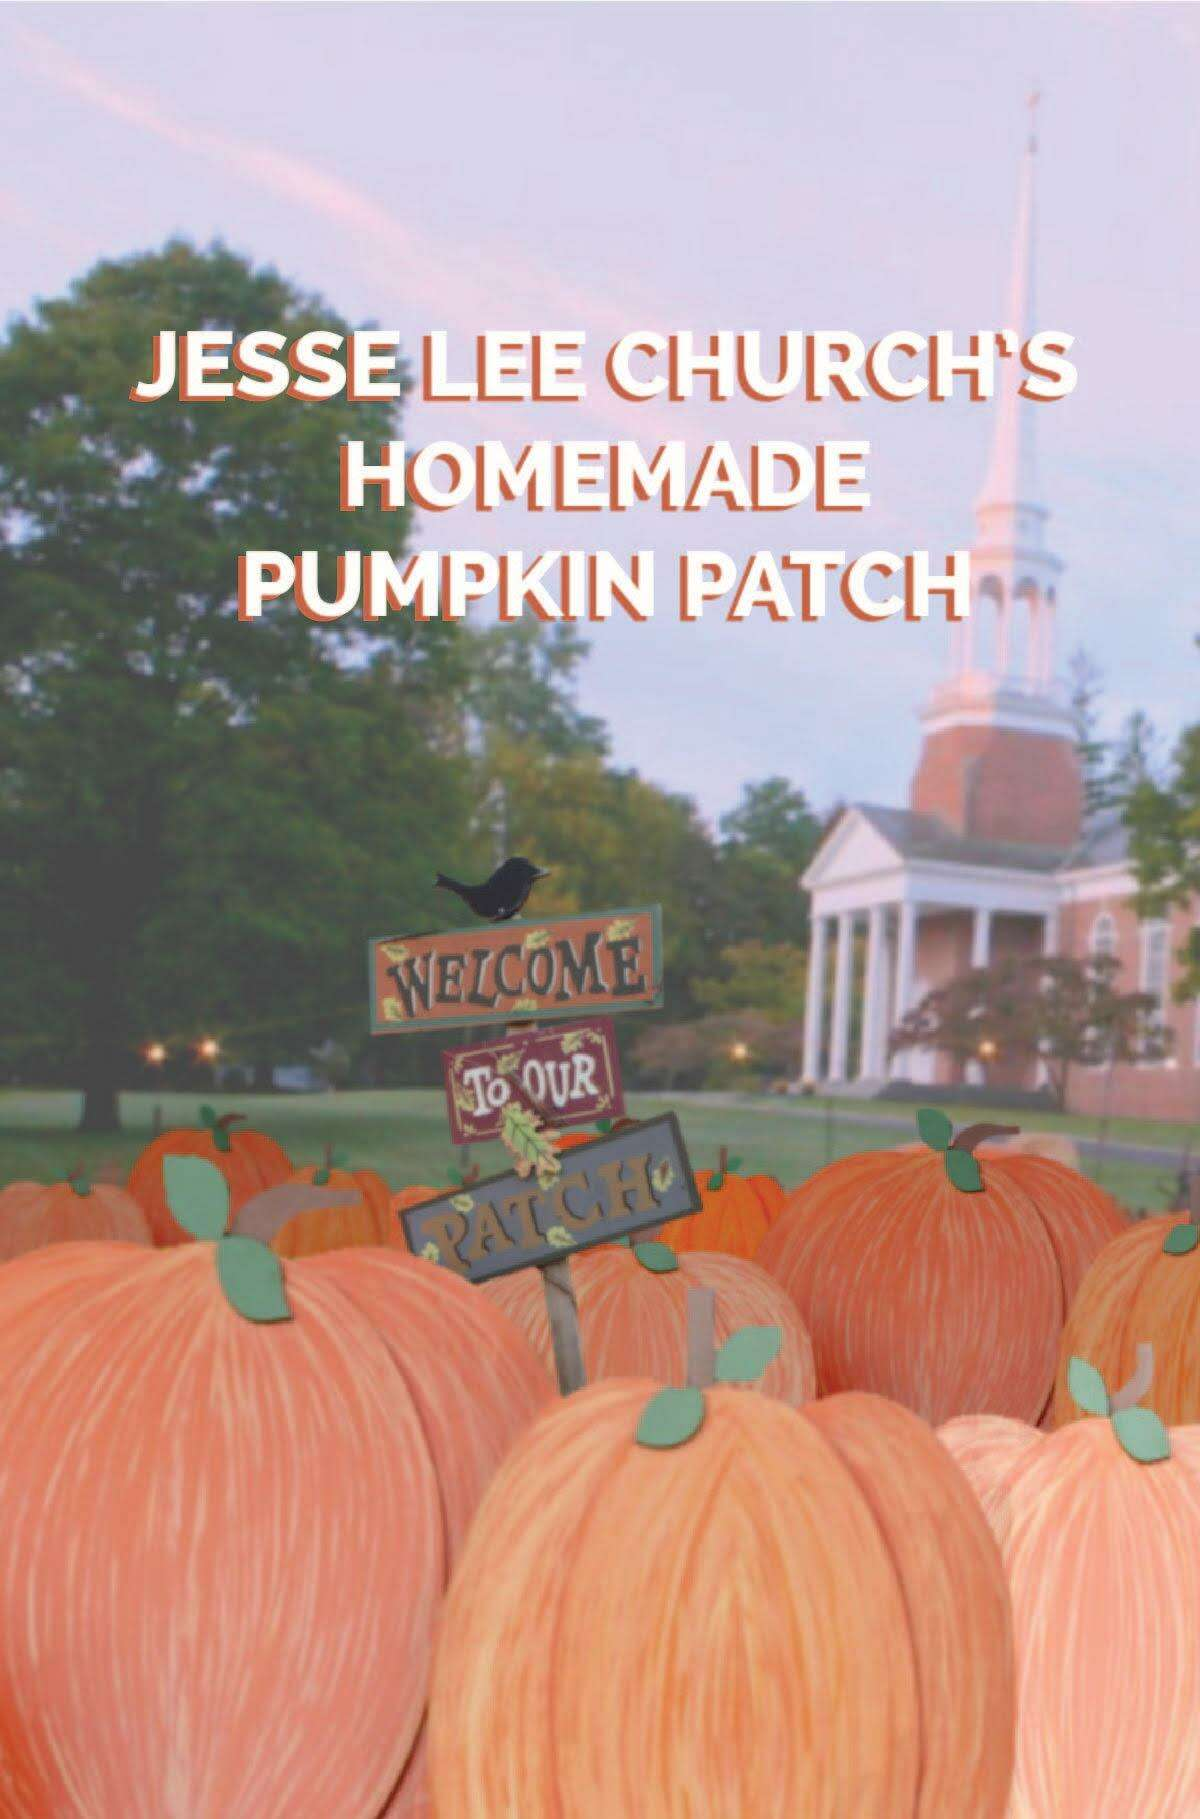 The annual sale of pumpkins to benefit the Navajo tribe will go on at Jesse Lee Church in Ridgefield, but this year the pumpkins will be made of plywood.